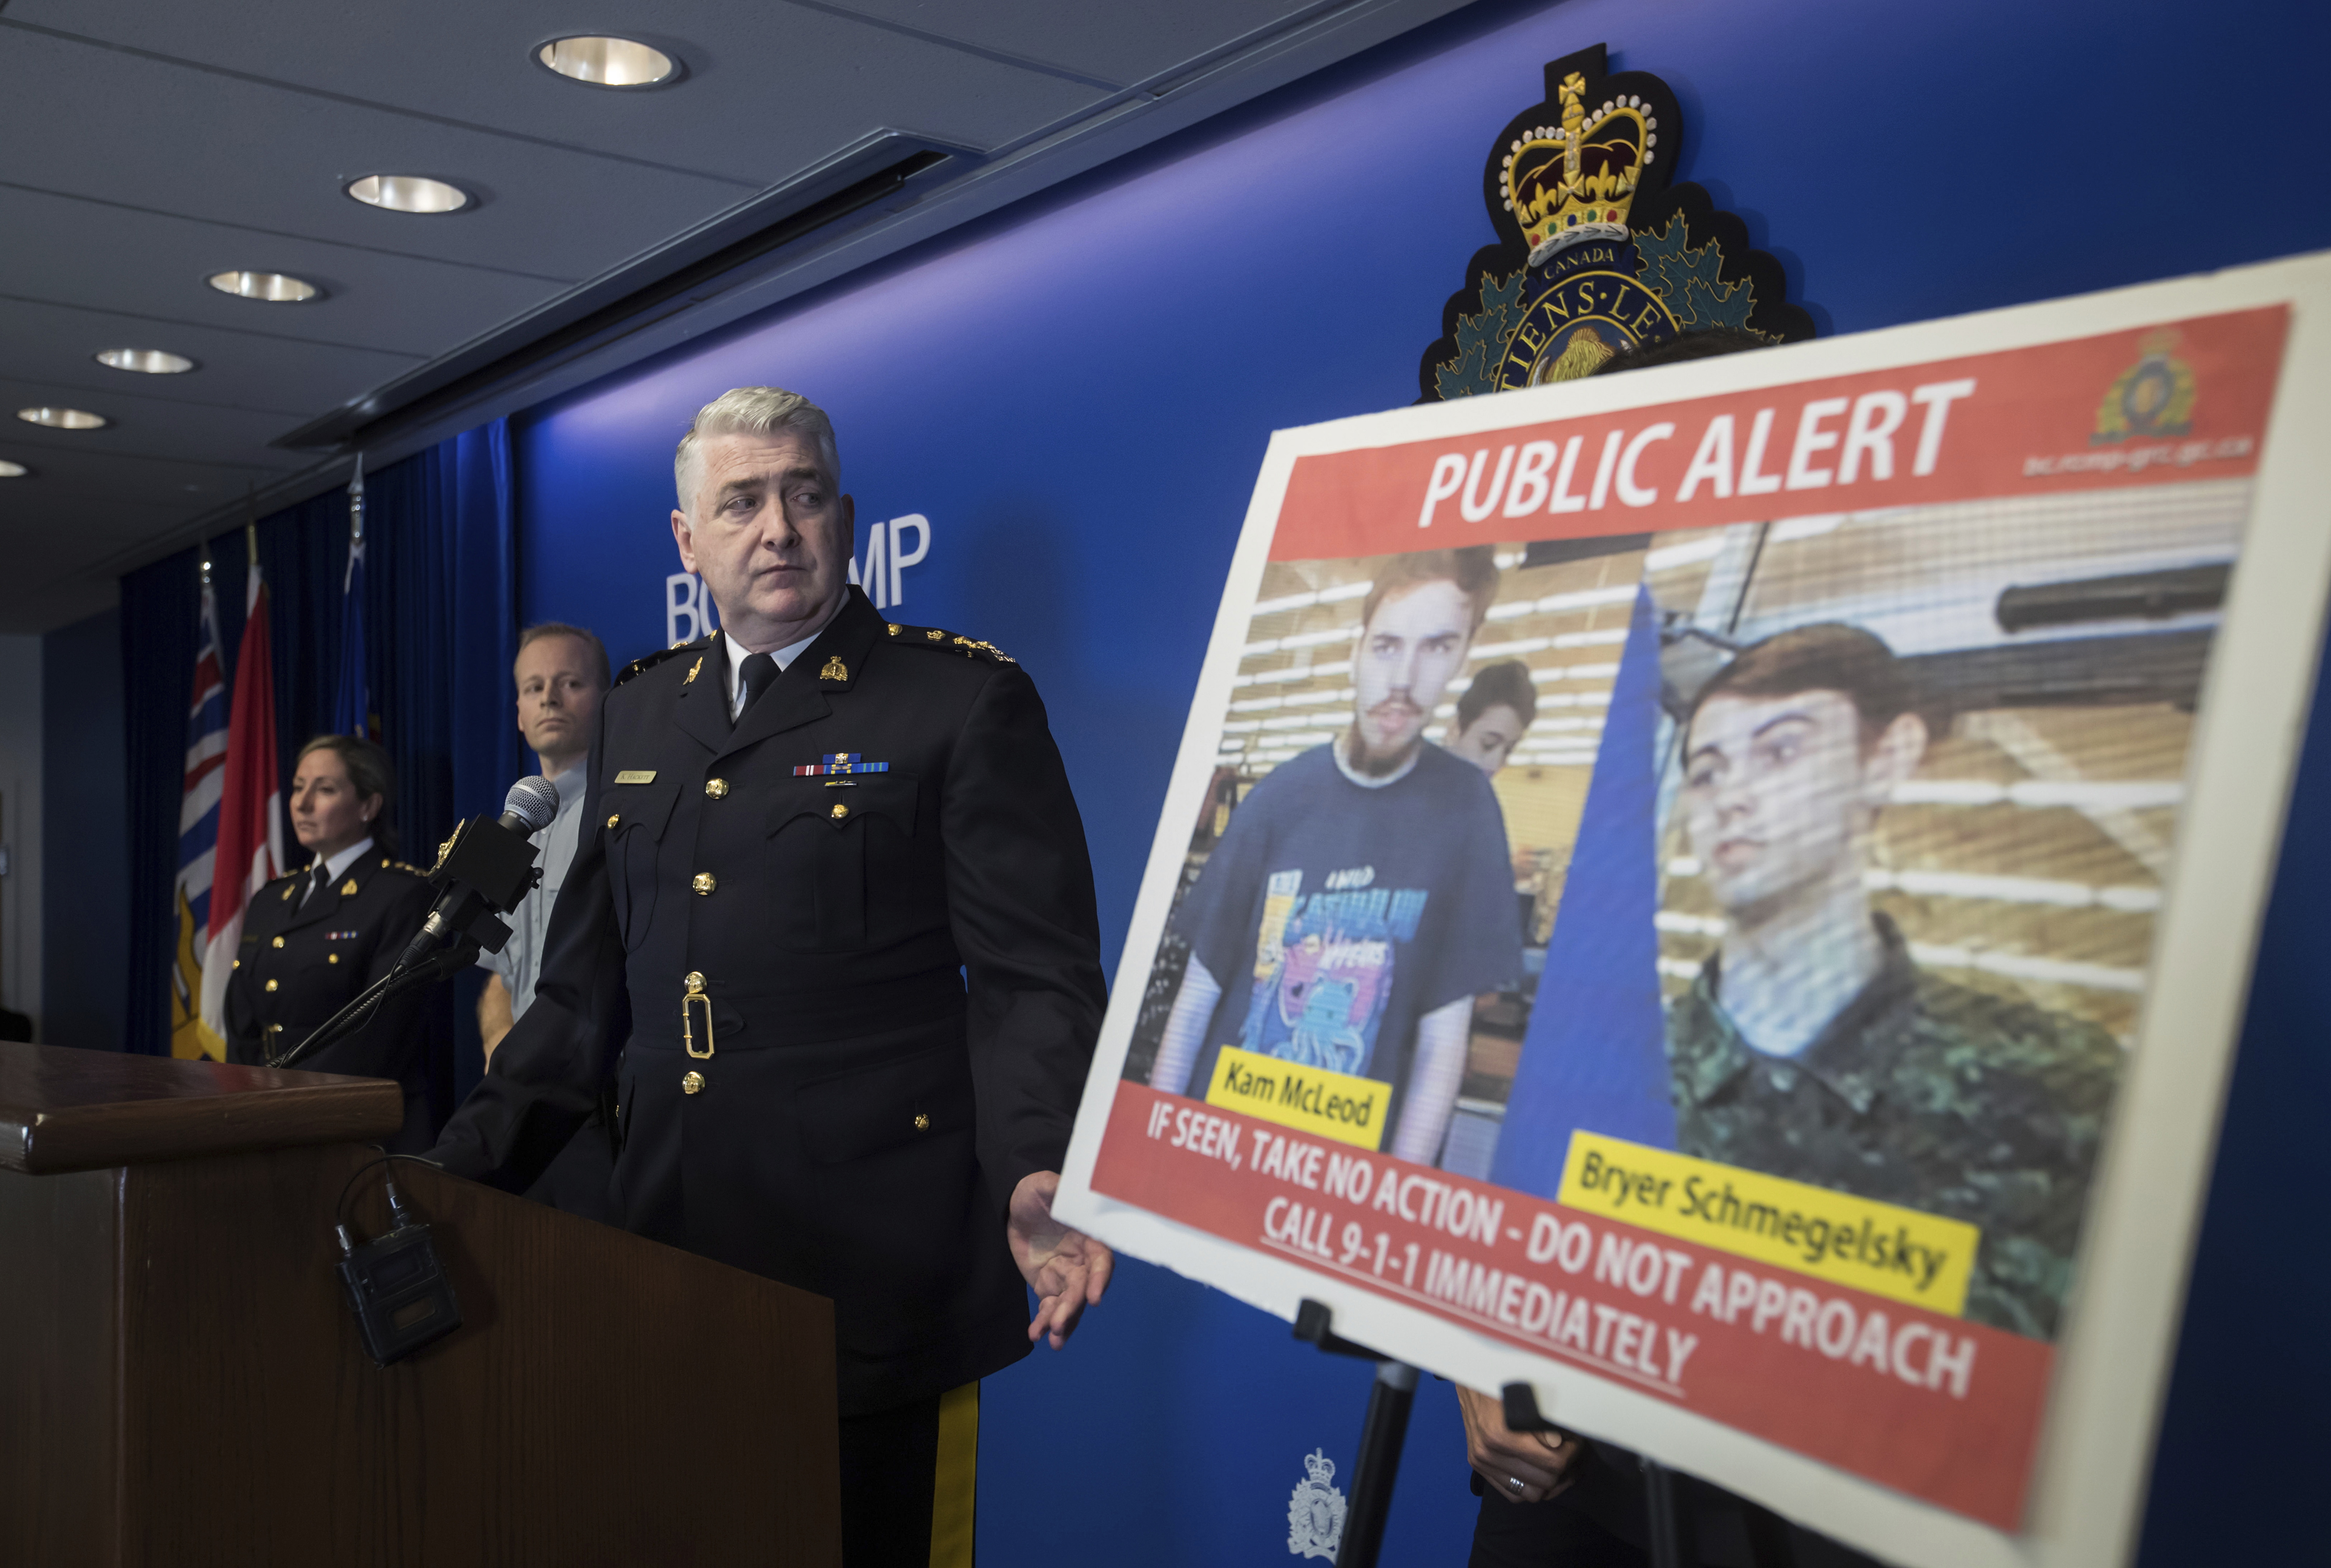 Canadian police confirm sightings of murder suspects